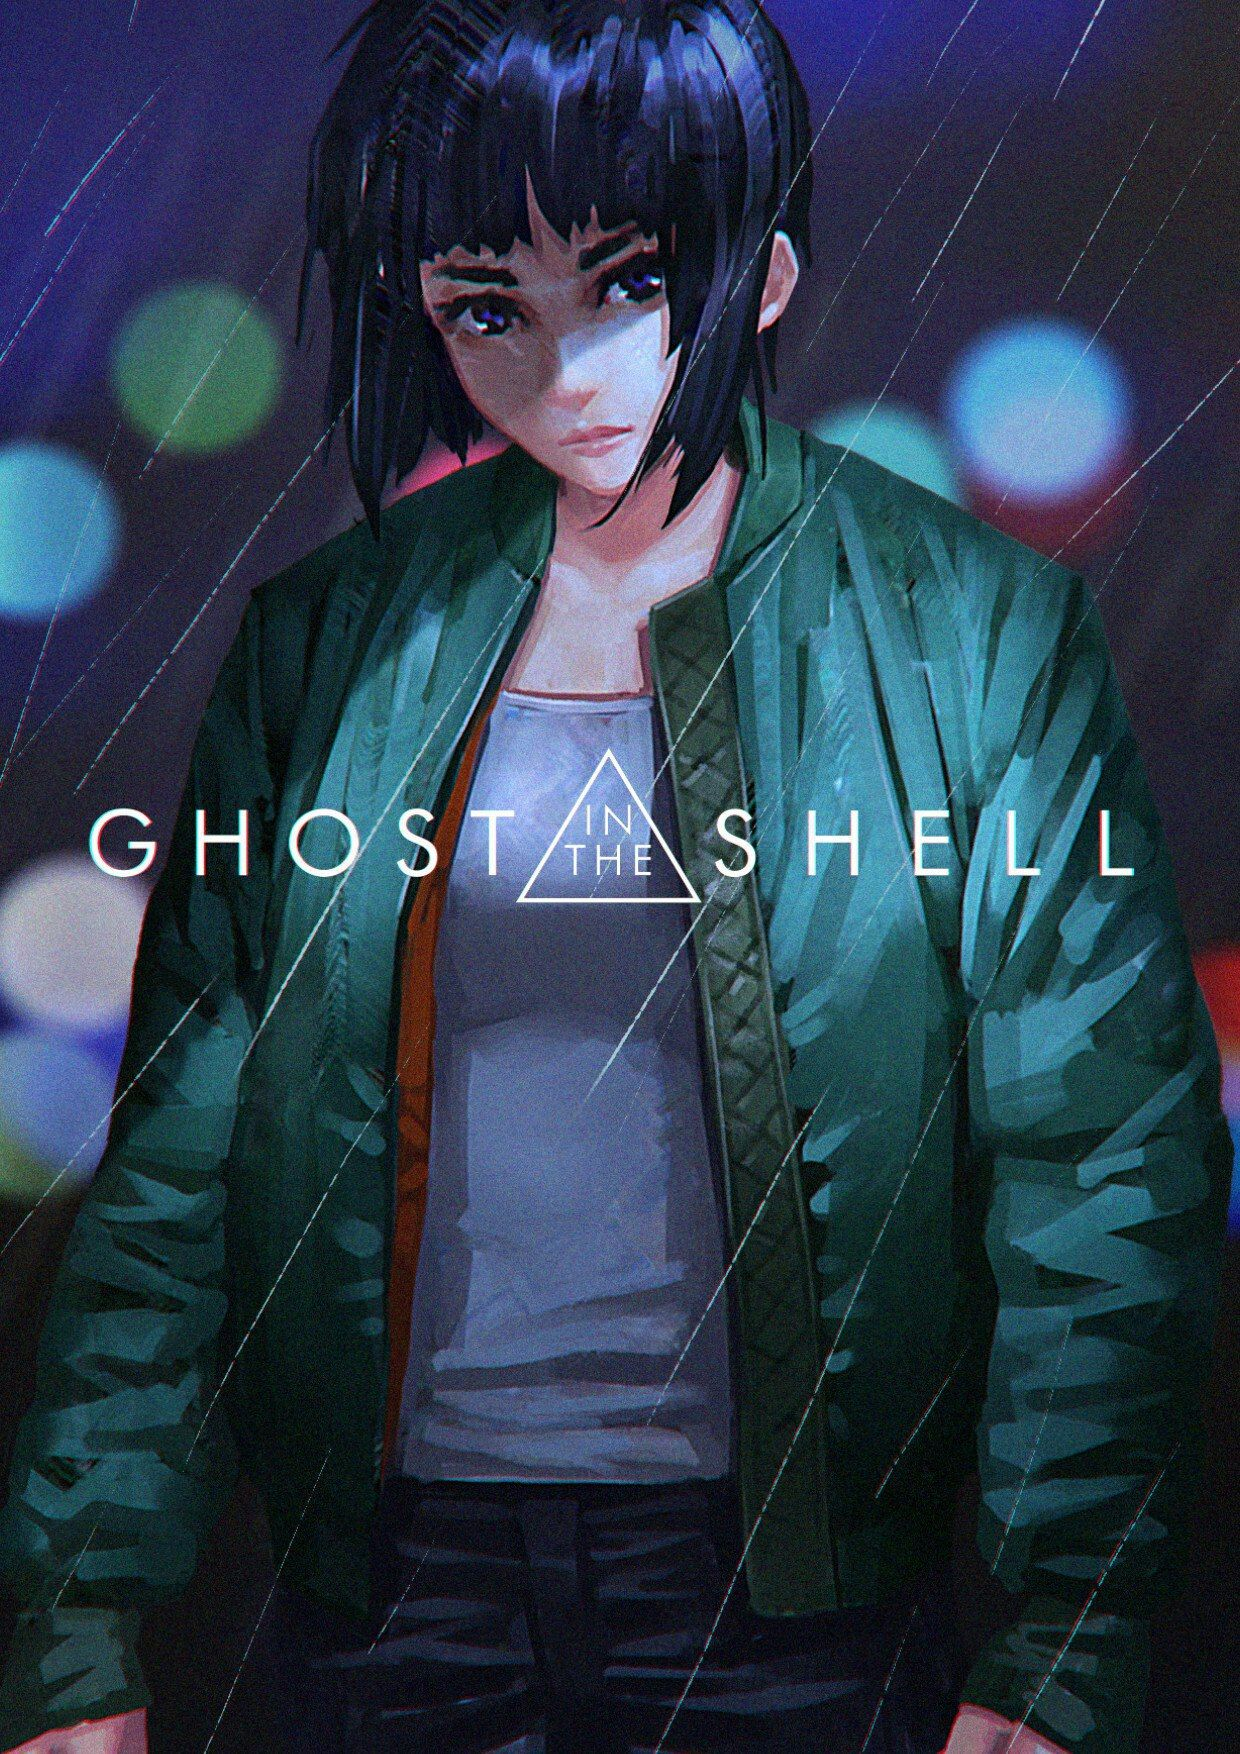 Pin By Daniel Van Voorhis On Gits Ghost In The Shell Anime Ghost Ghost